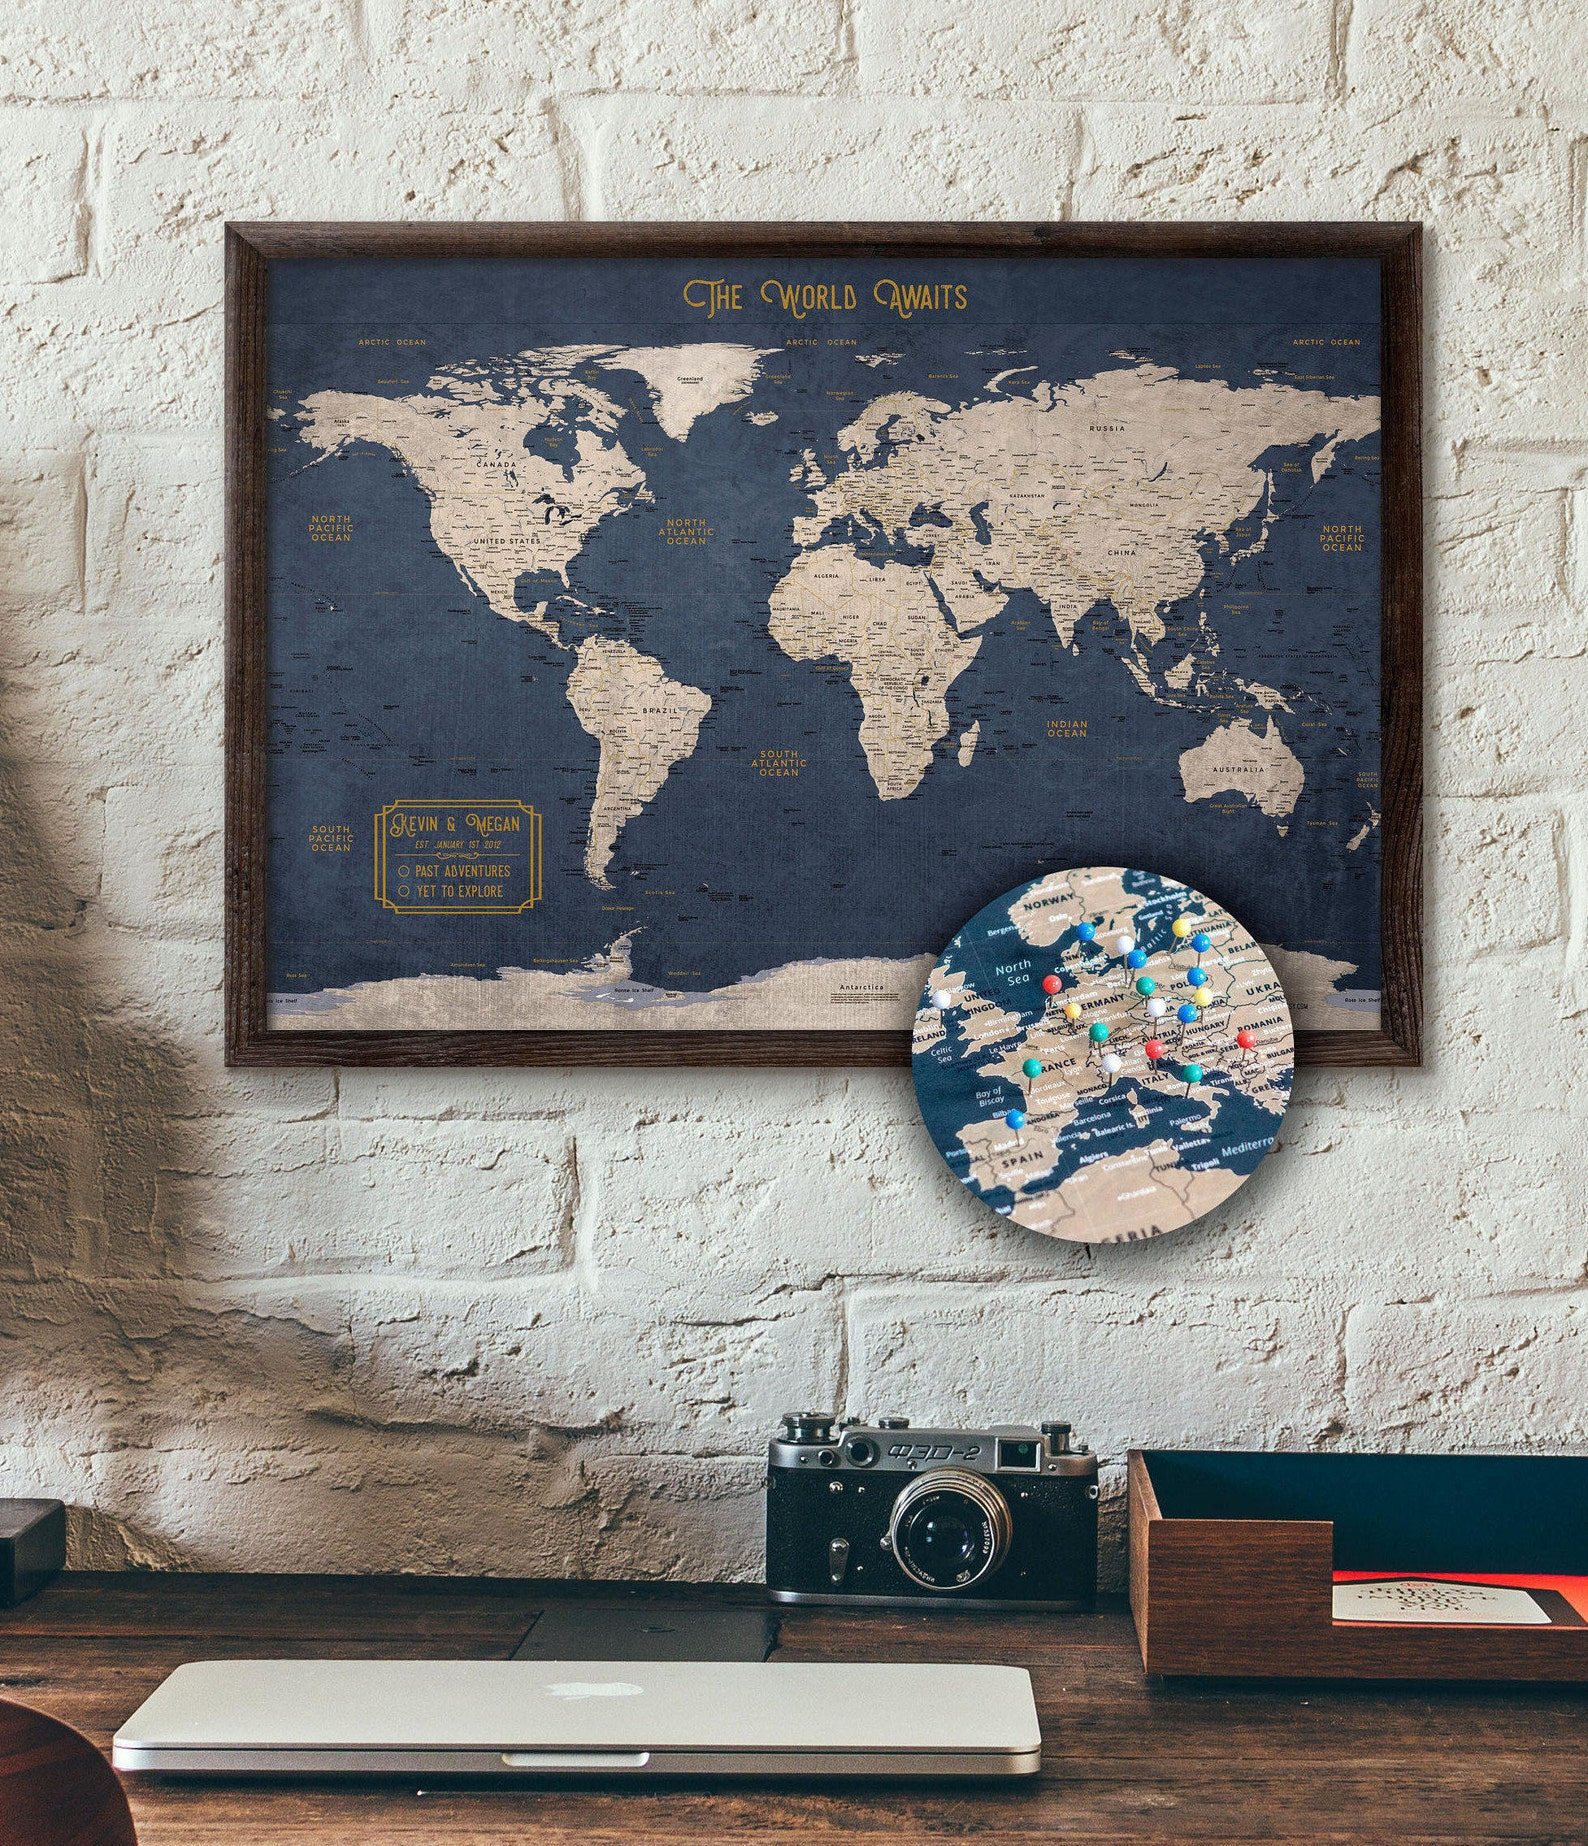 Push Pin Travel Map: Gifts for Mom